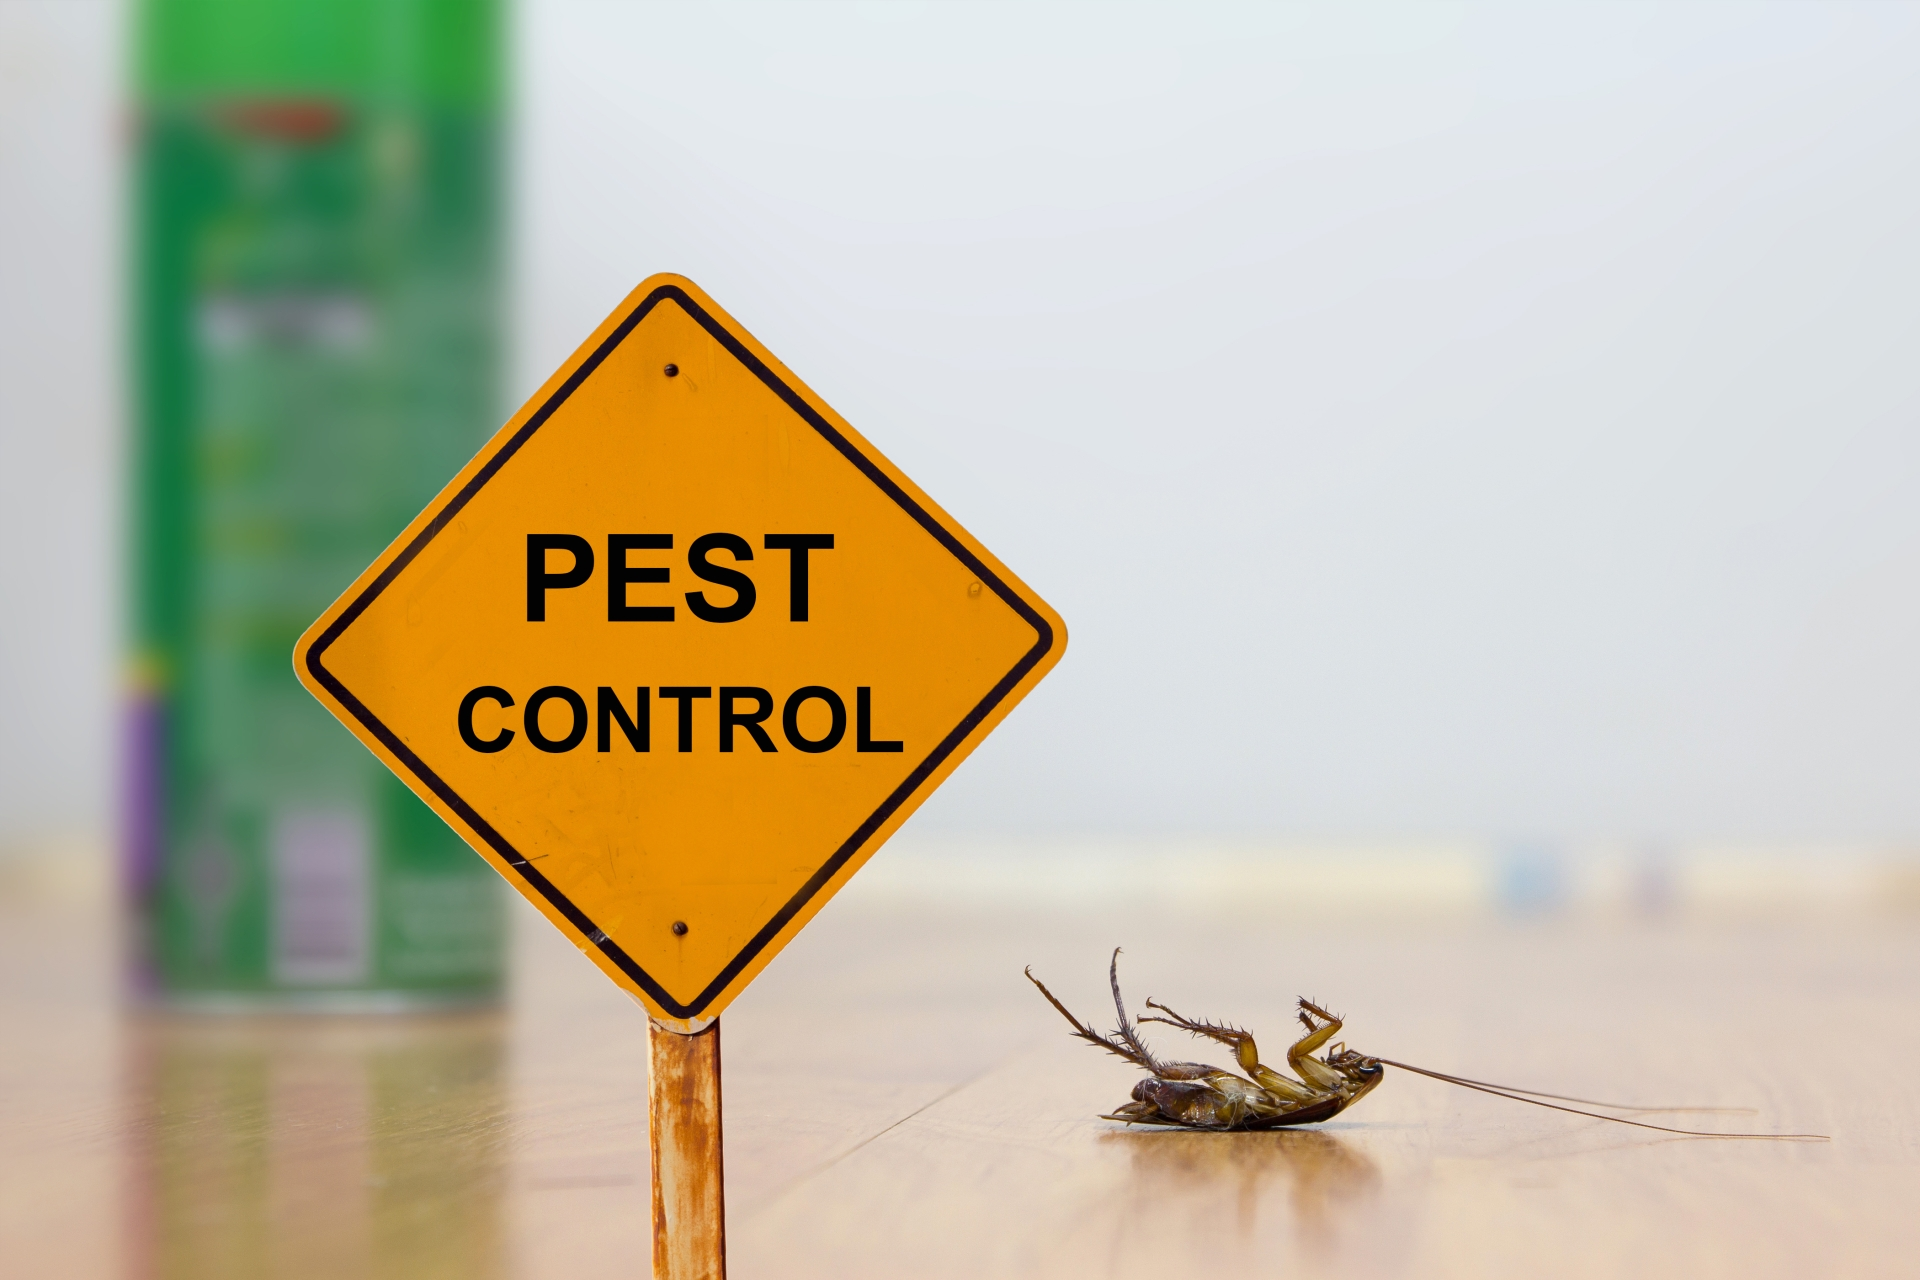 24 Hour Pest Control, Pest Control in Canbury, Coombe, KT2. Call Now 020 8166 9746